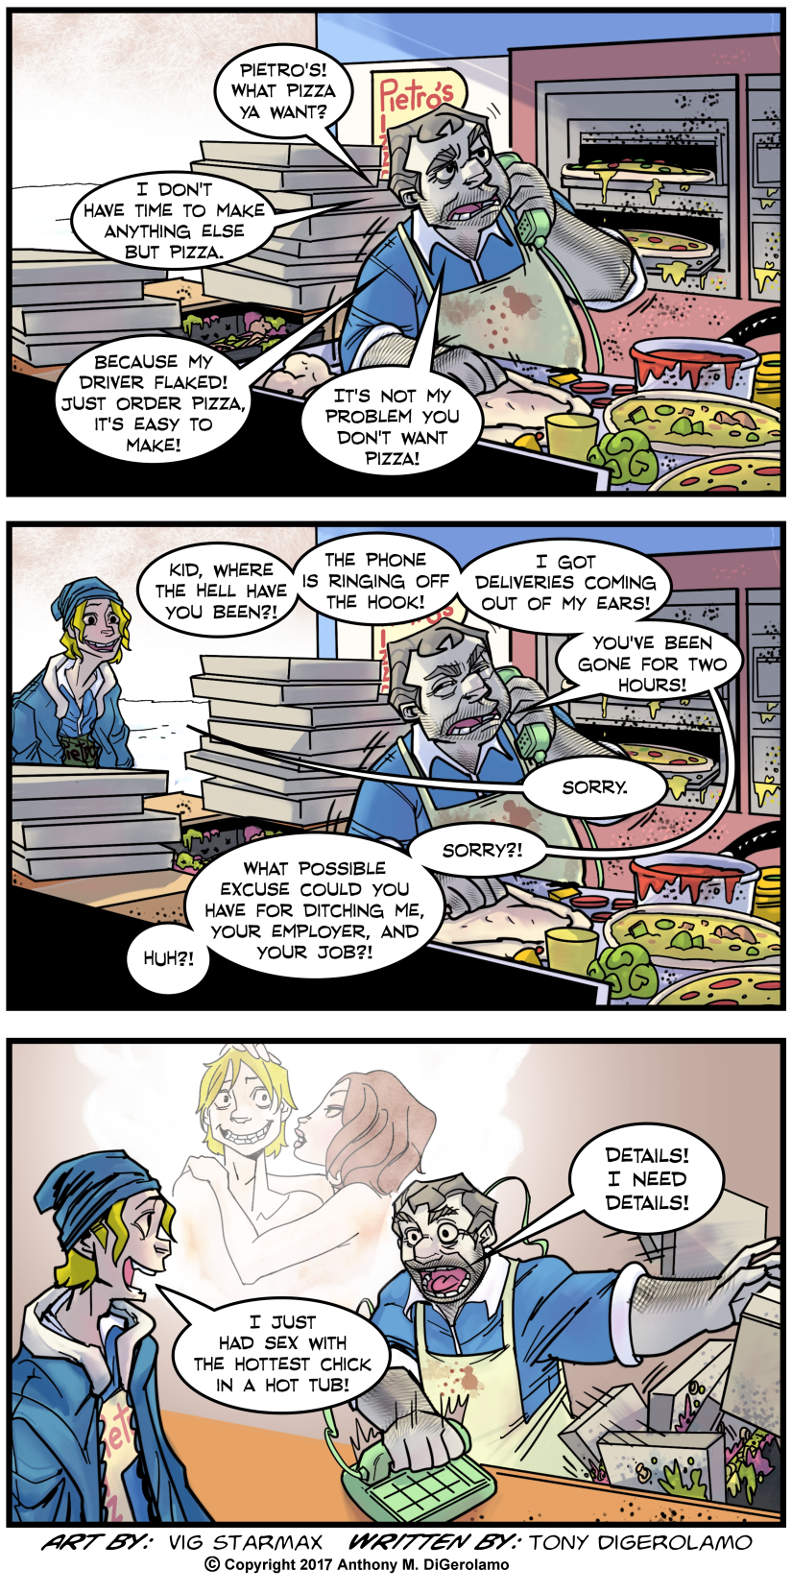 Tales of Pizza:  Work or Details